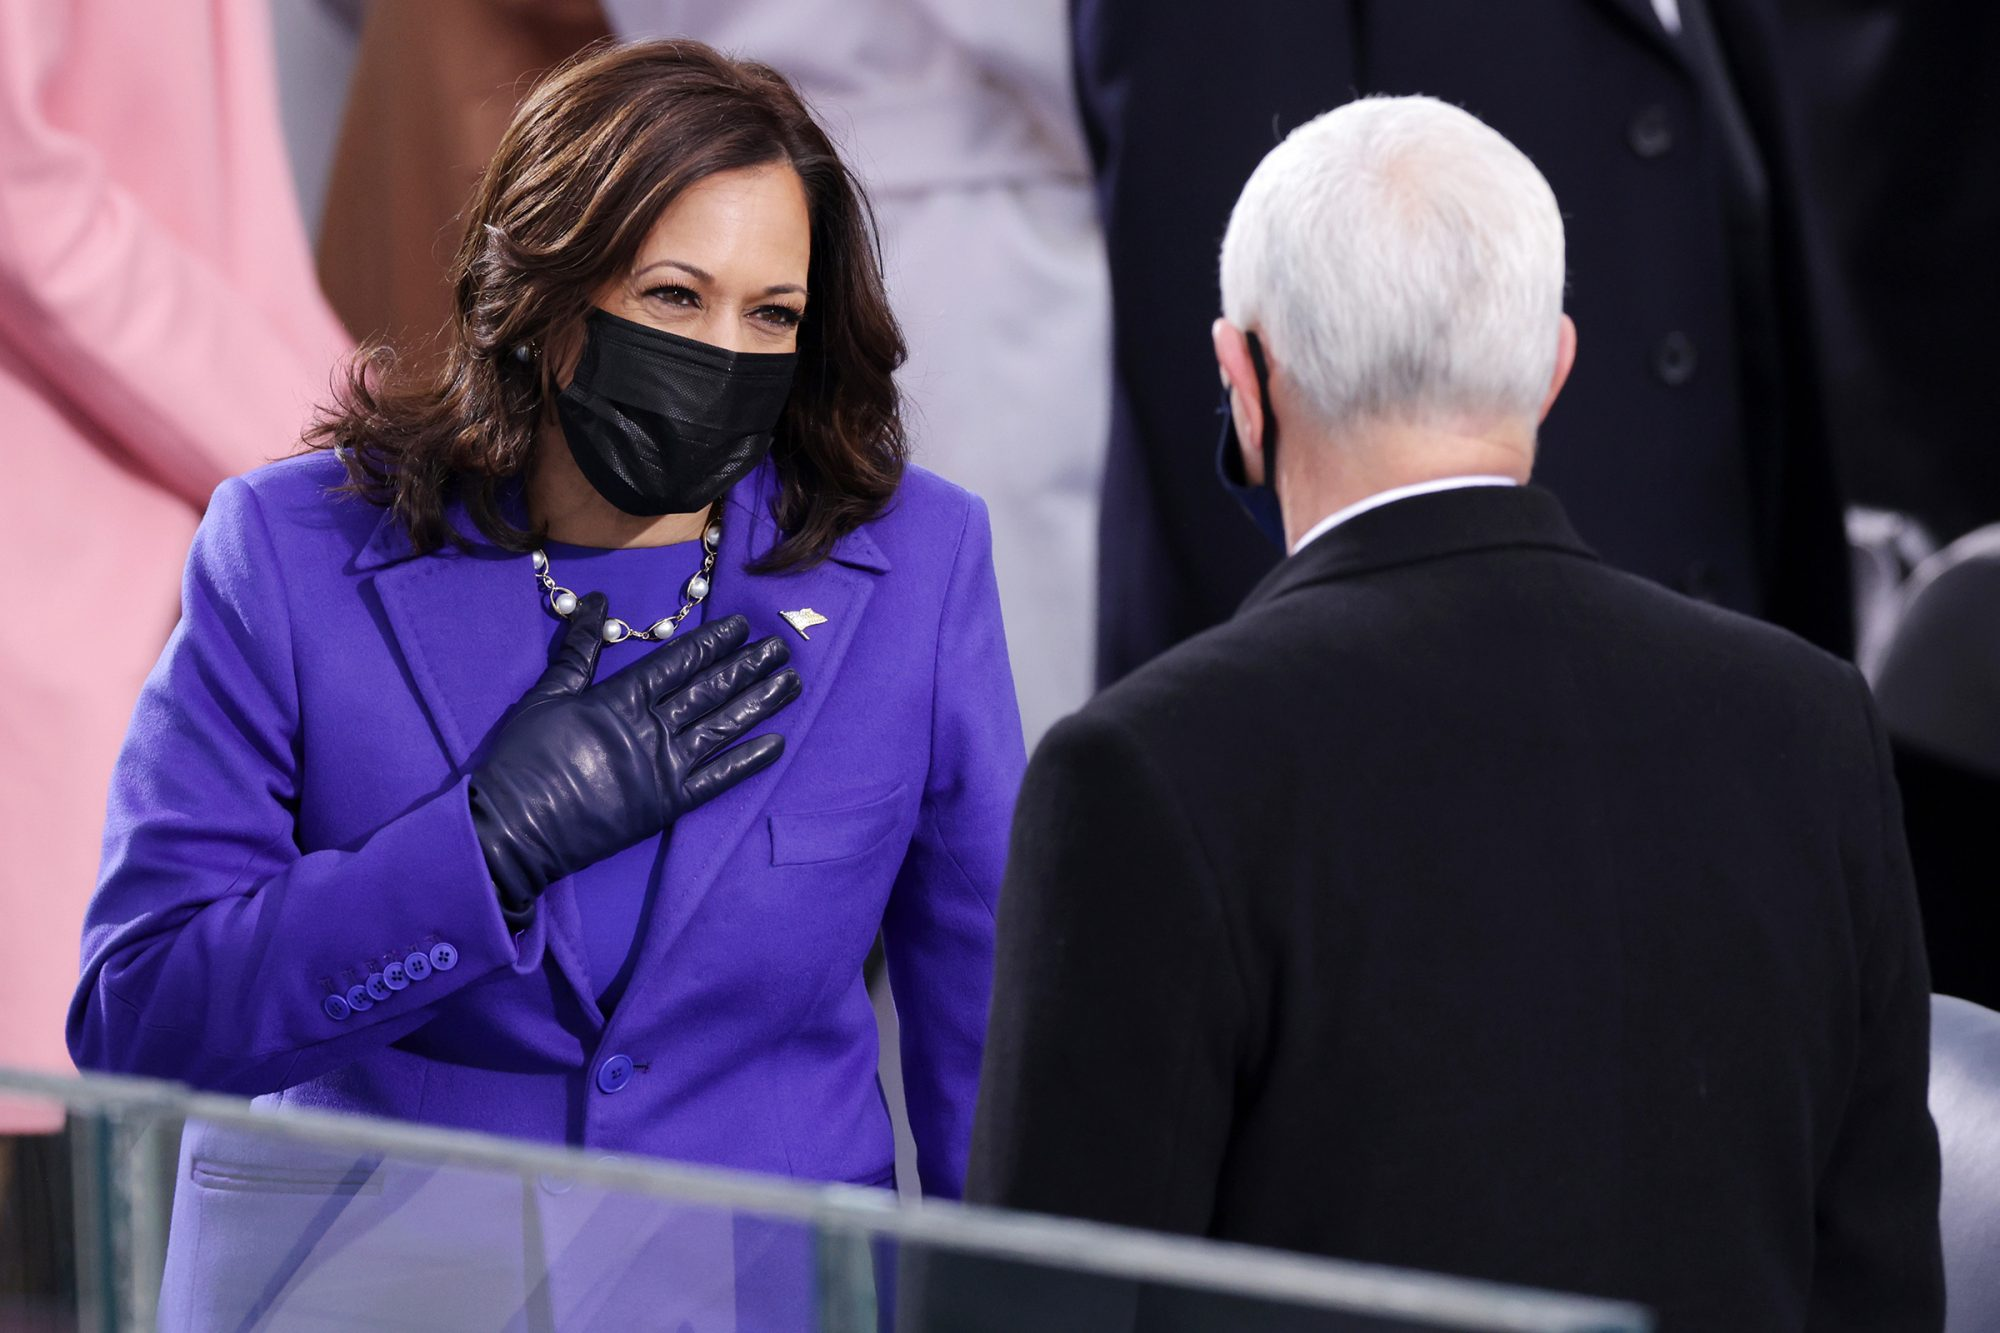 U.S. Vice President-elect Kamala Harris greets Vice President Mike Pence as she arrives to the inauguration of U.S. President-elect Joe Biden on the West Front of the U.S. Capitol on January 20, 2021 in Washington, DC